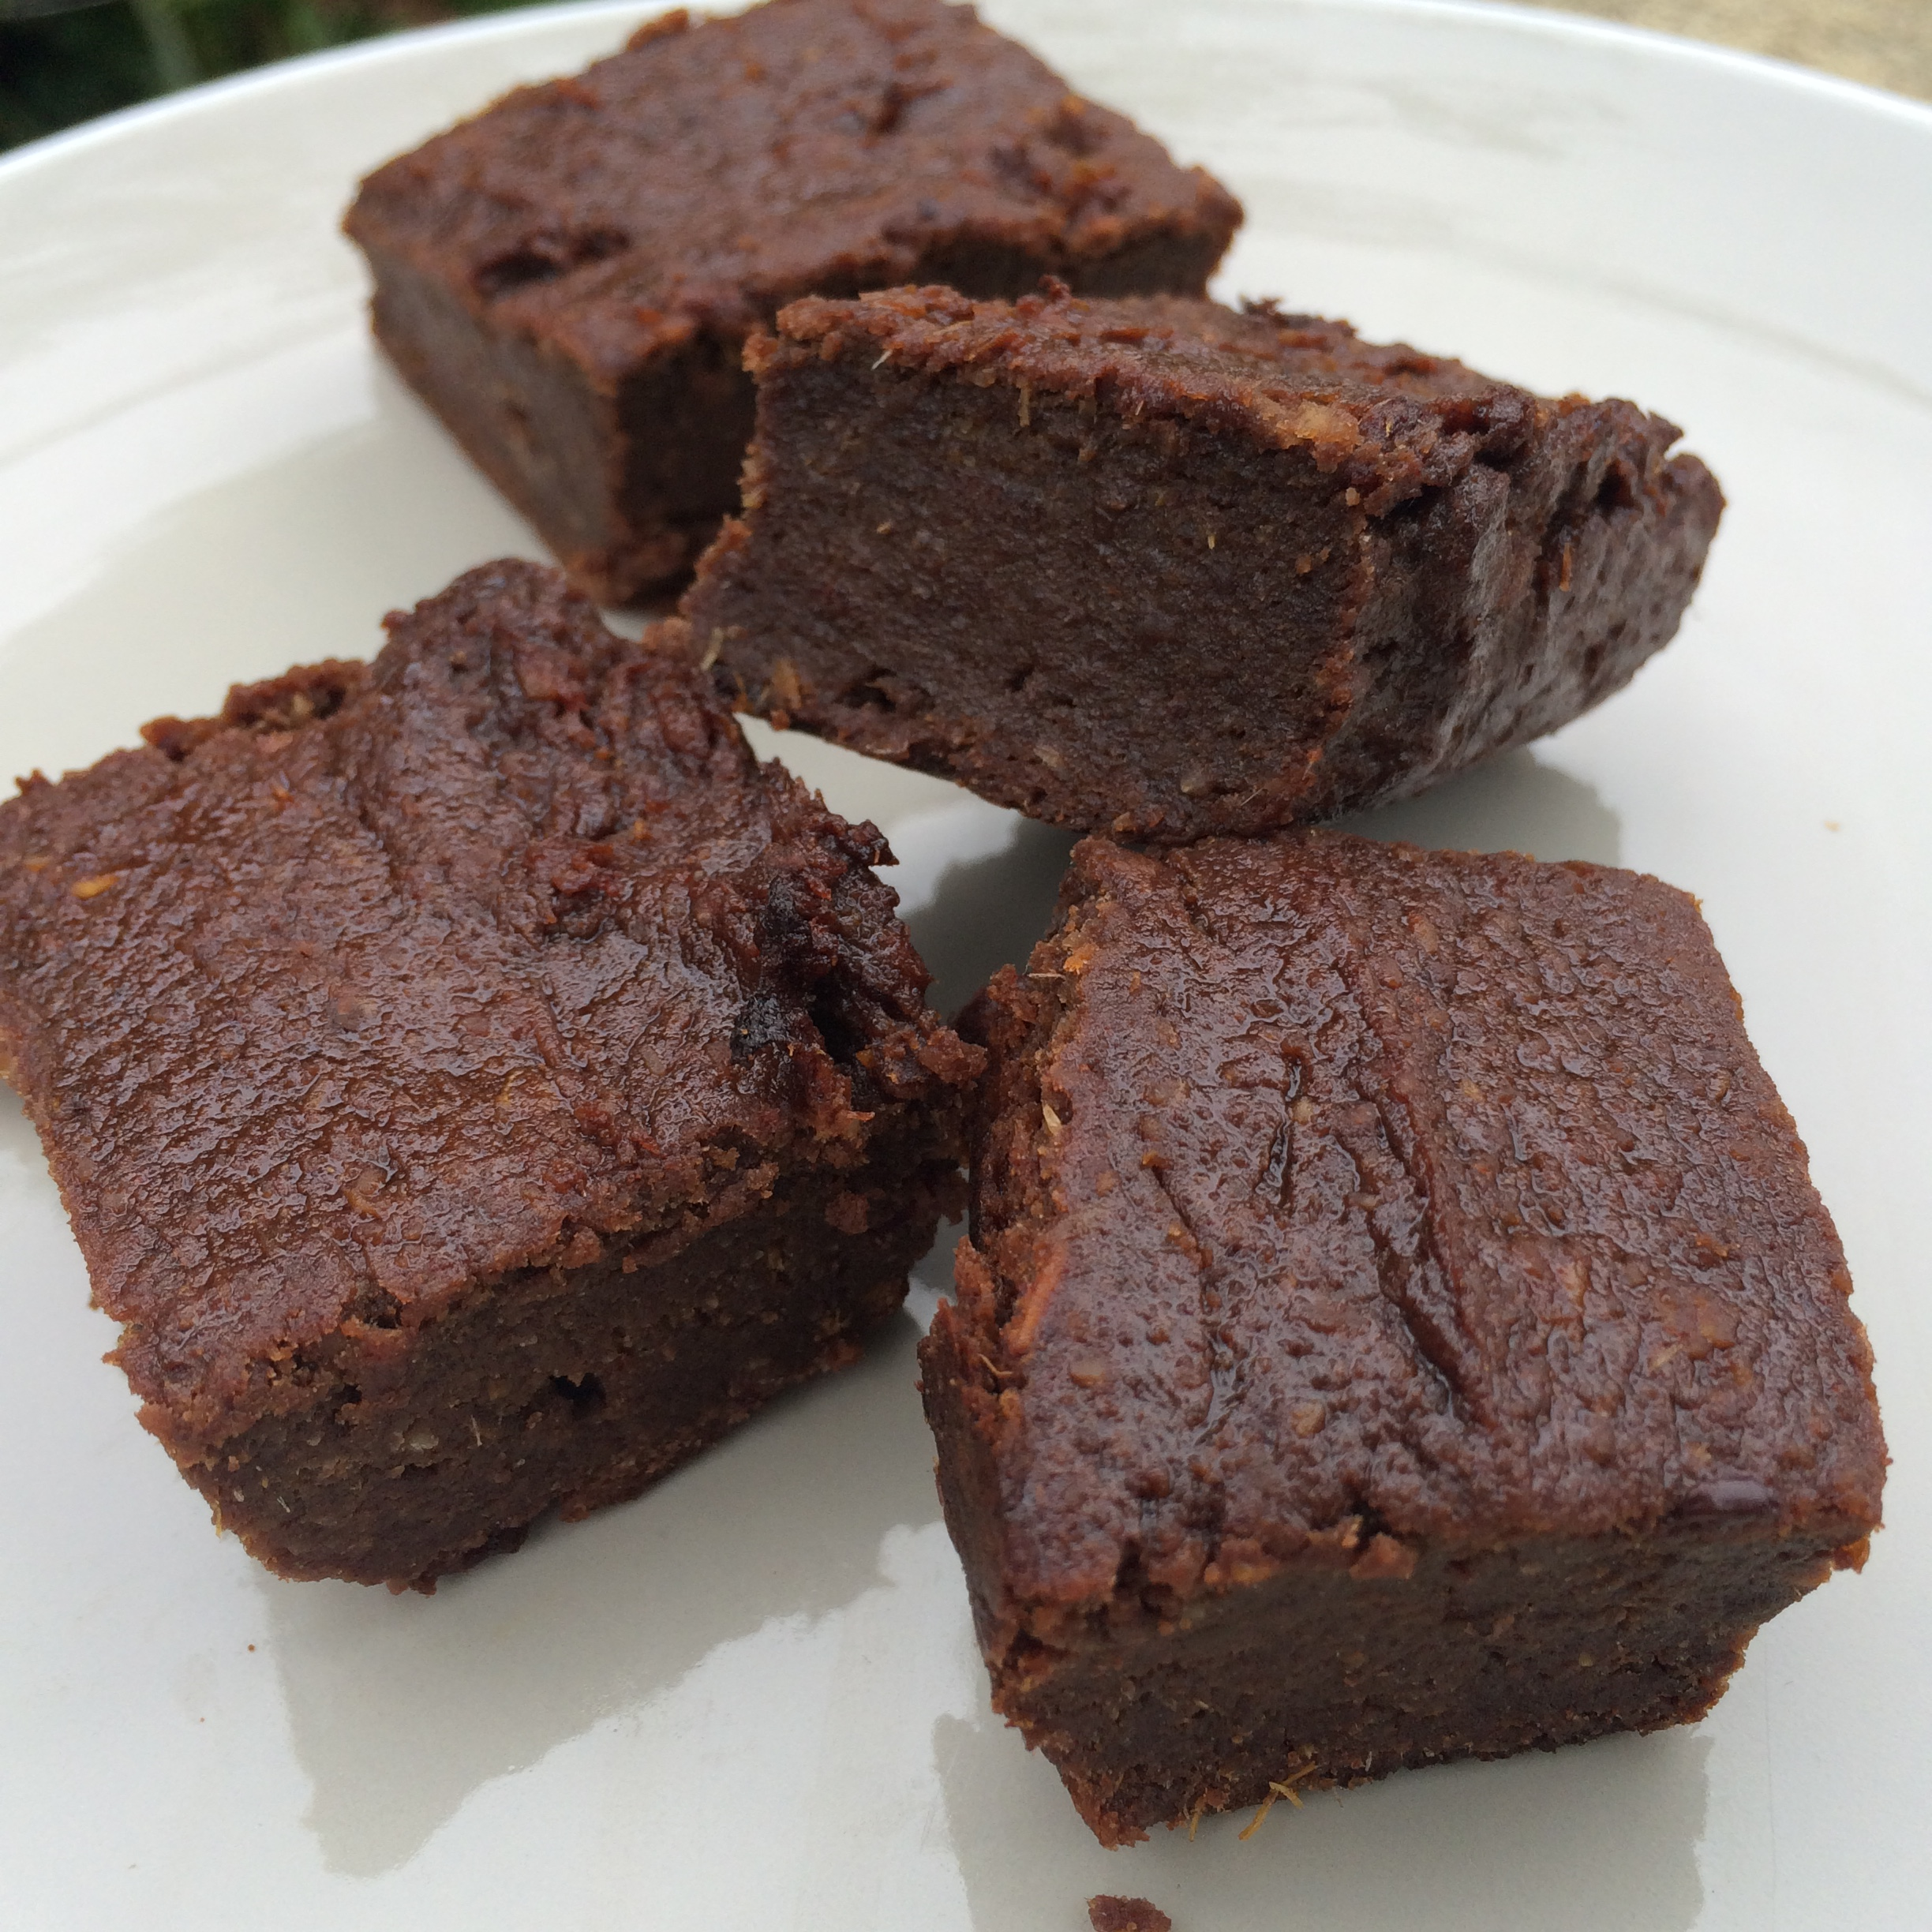 A Cake Recipe Pure And Simple Bakes Kue Brownis By Nature Cakes Bali I Have To Be Honest This Was Complete Experiment But Im Pretty Happy With The Results Its Tasty Got Natural Sweetness Actually